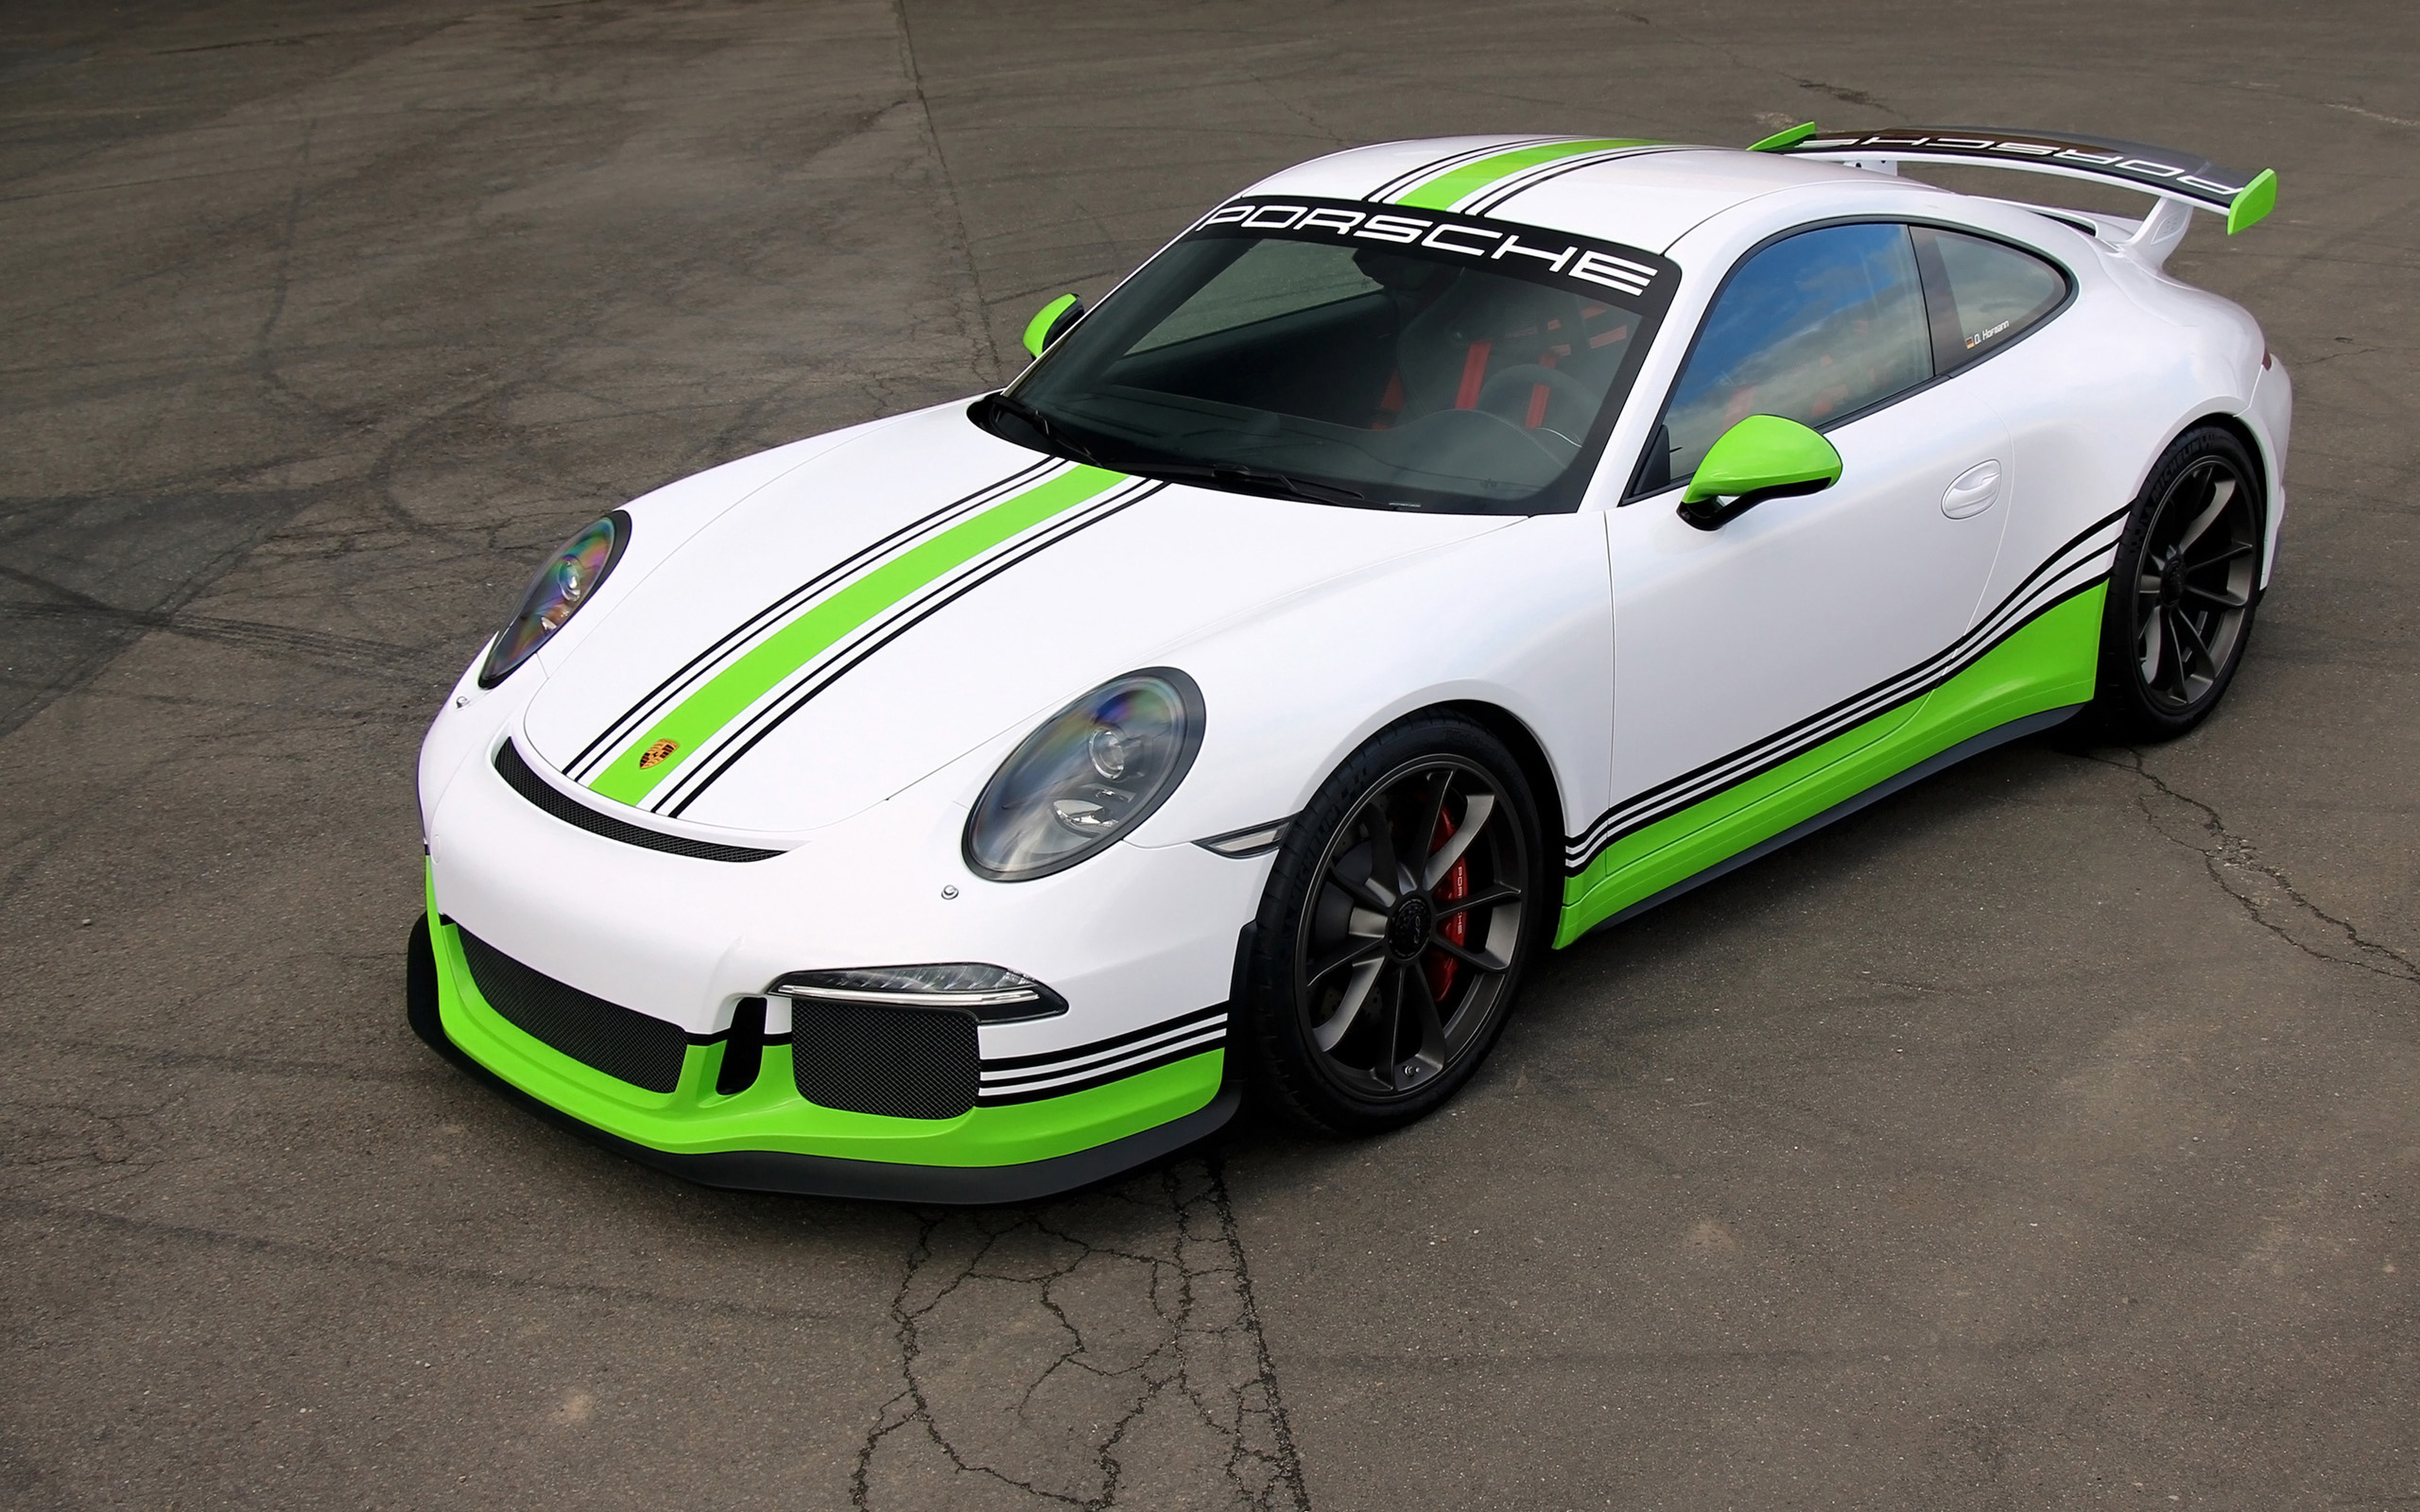 2014 fostla de porsche 991 gt3 wallpaper hd car. Black Bedroom Furniture Sets. Home Design Ideas